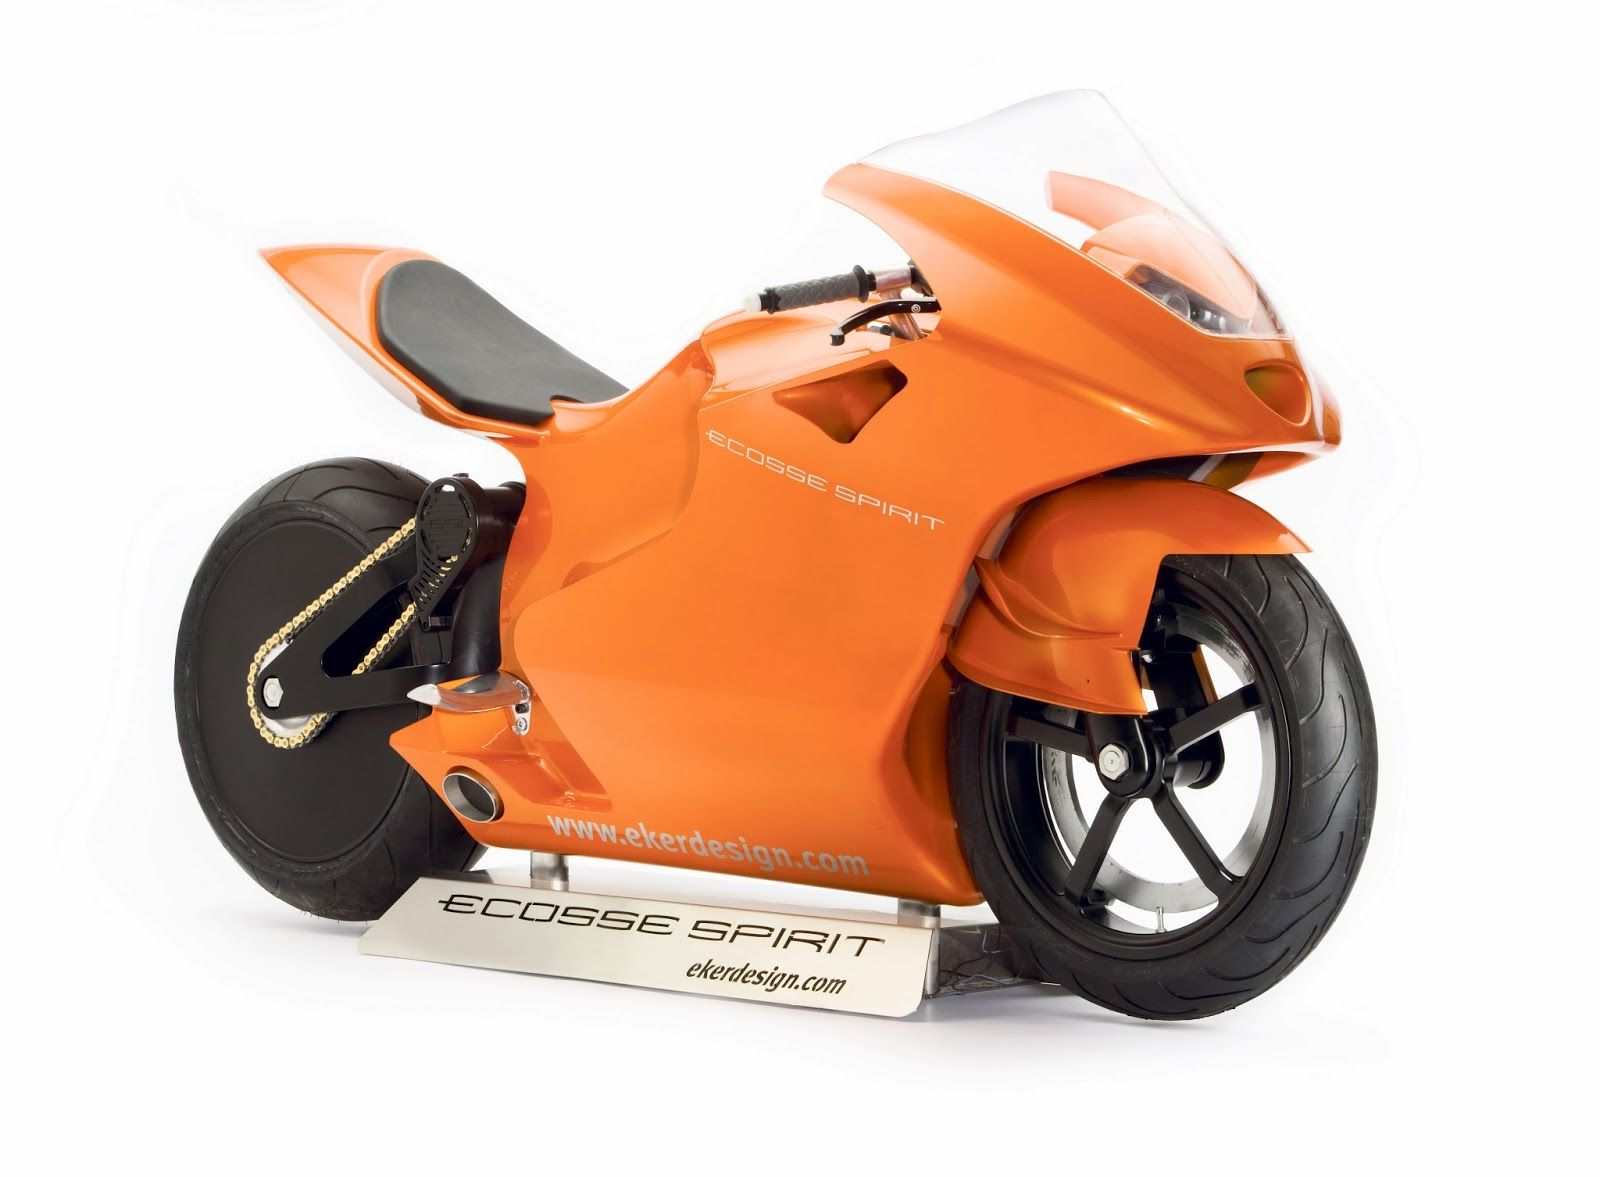 Ecosse Es1 Superbike 3 6 Million Most Expensive Motorcycle In